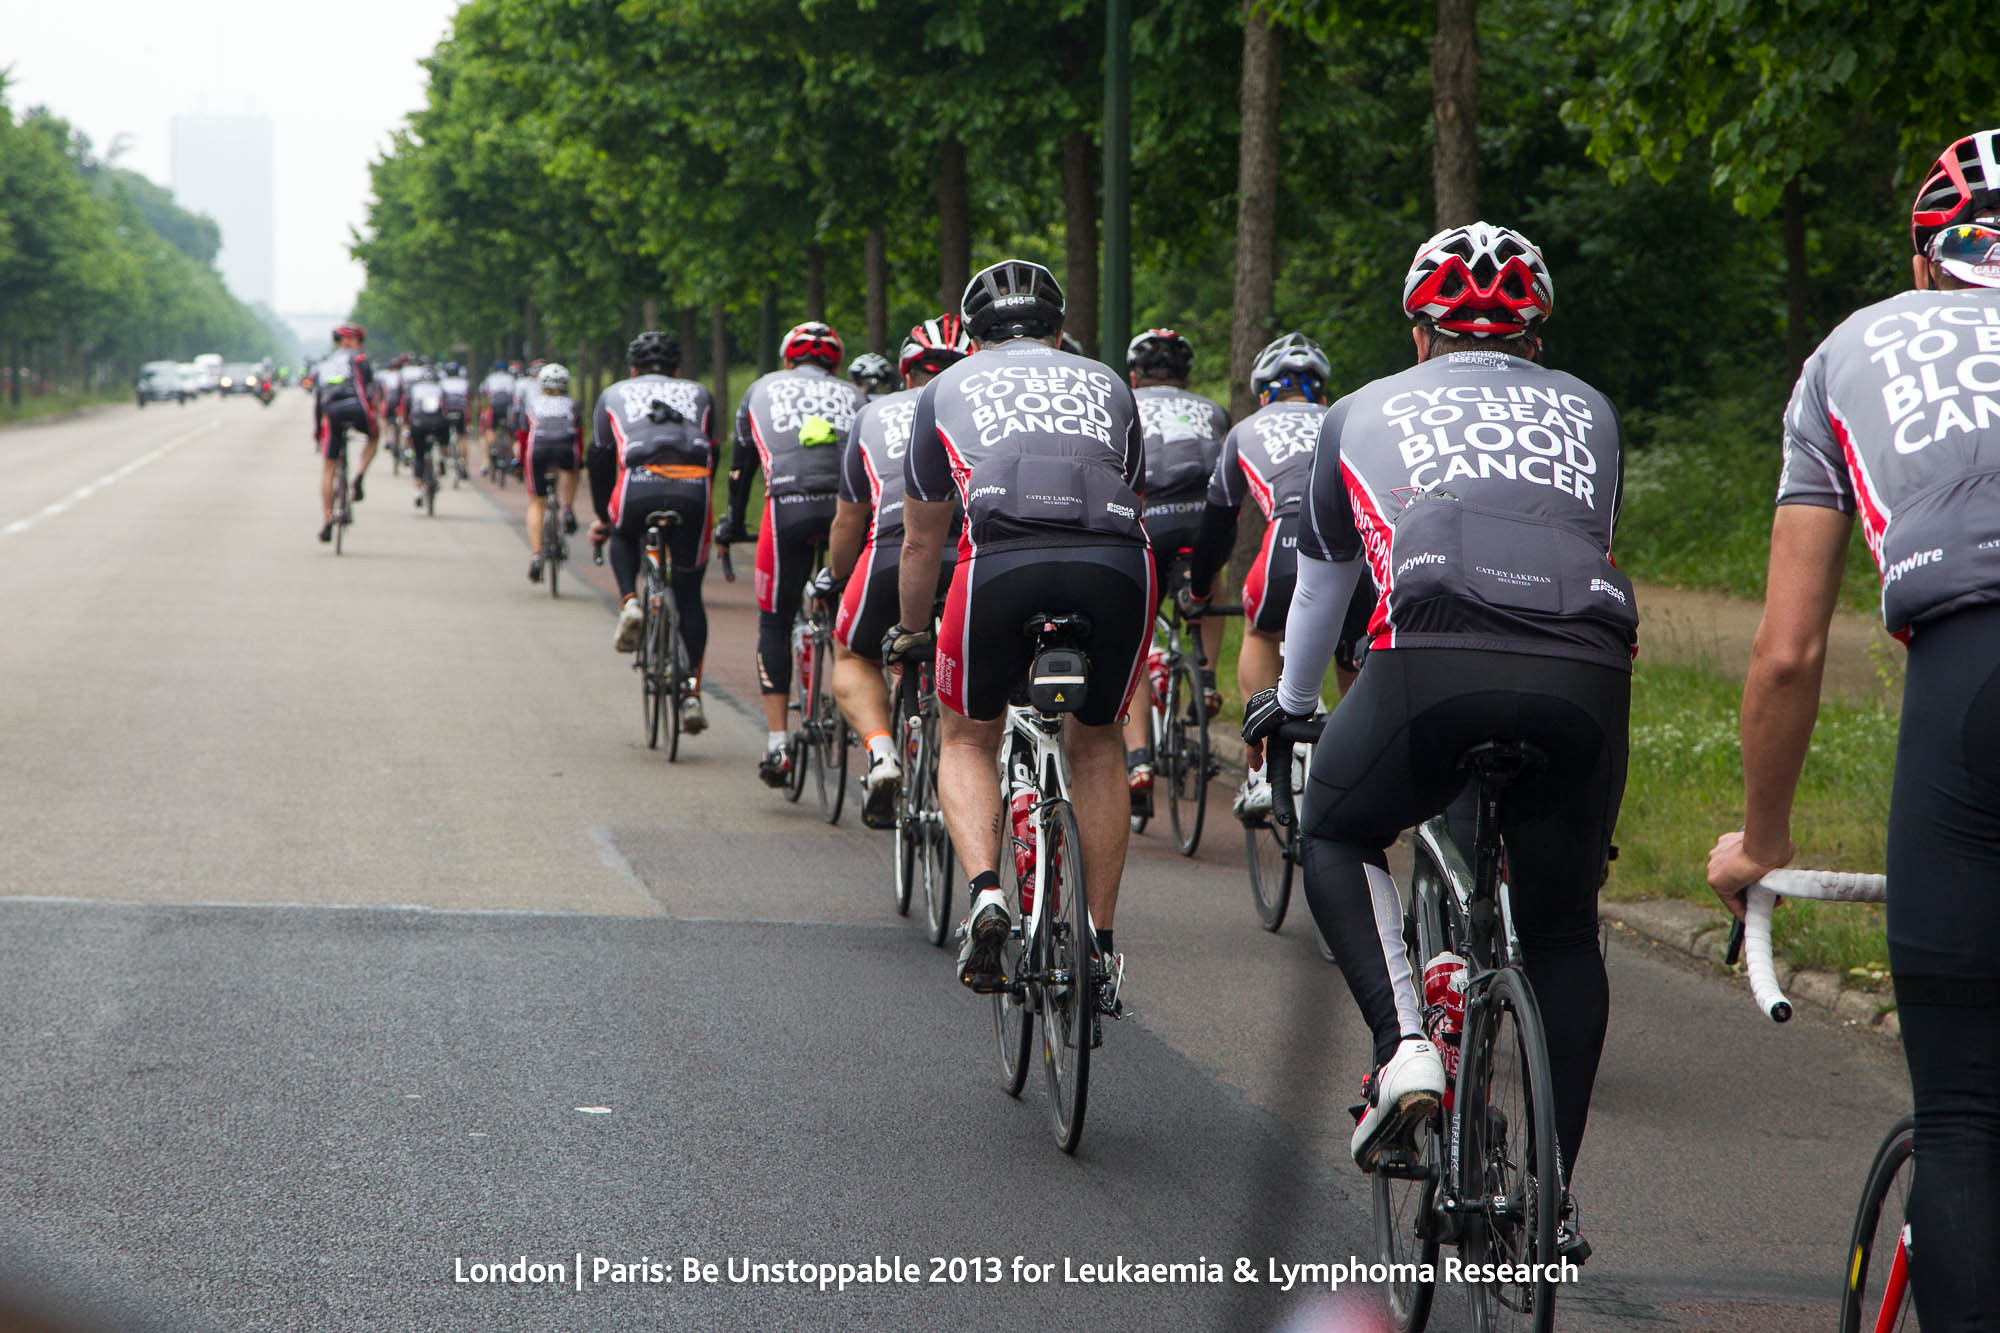 17.7.1 Cycling to Beat Blood Cancer